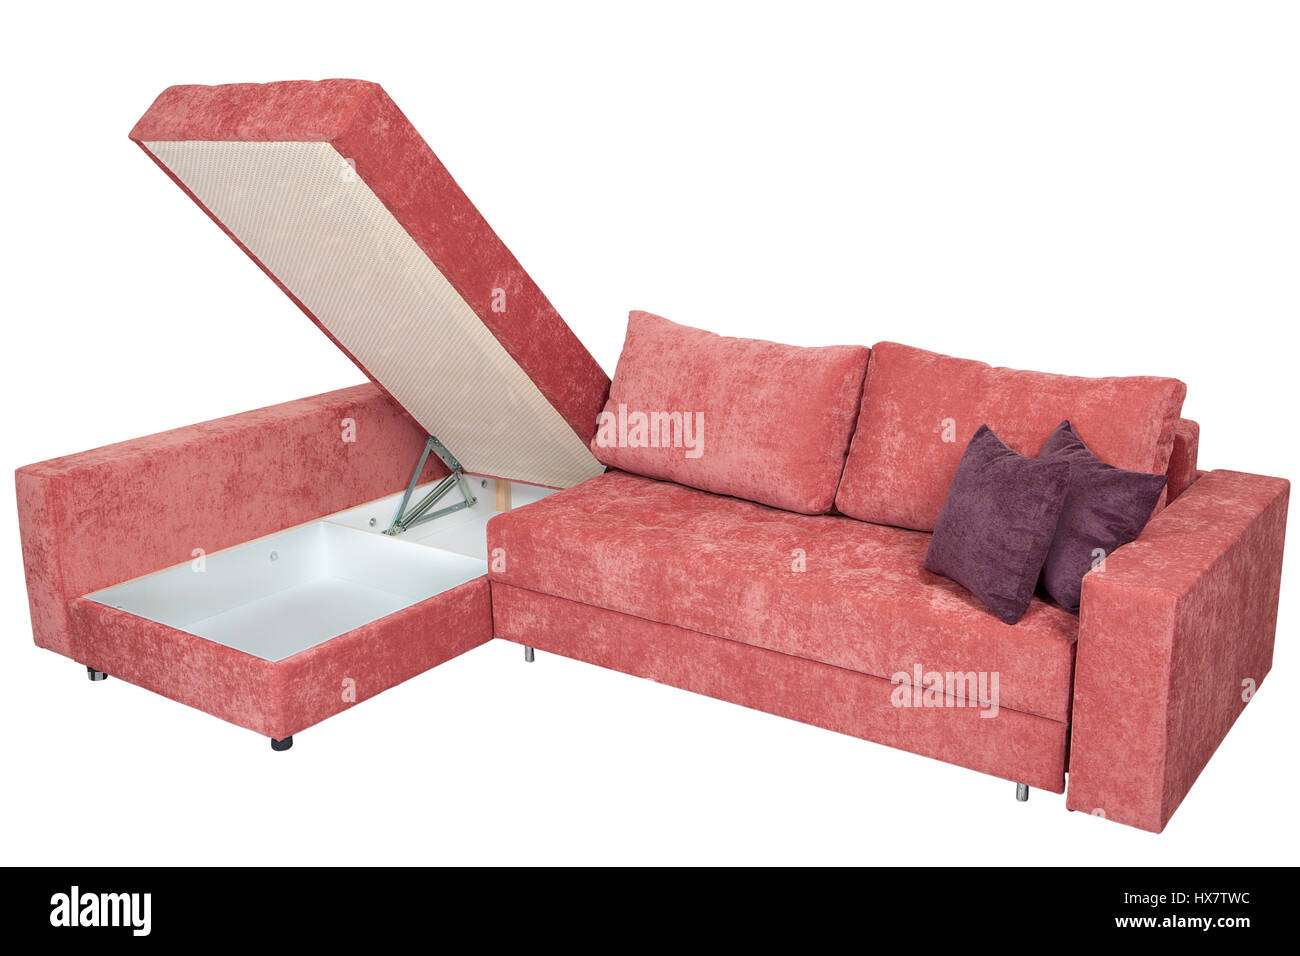 Corner Convertible Sofa Bed With Storage Space Upholstery